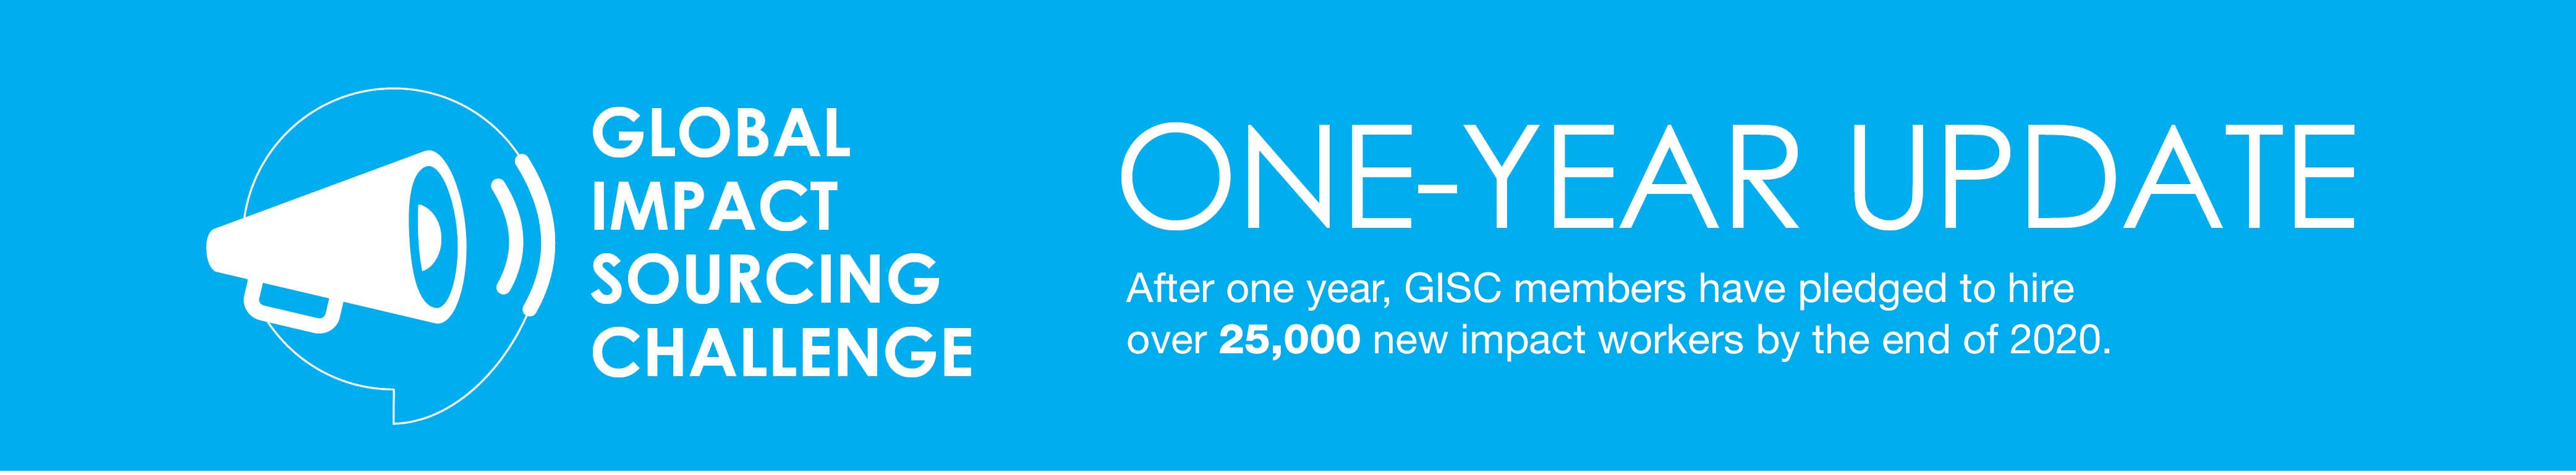 Impact Sourcing Challenge one year update: After one year, GISC members have pledged to hire 25,000 new impact workers by the end of 2020.